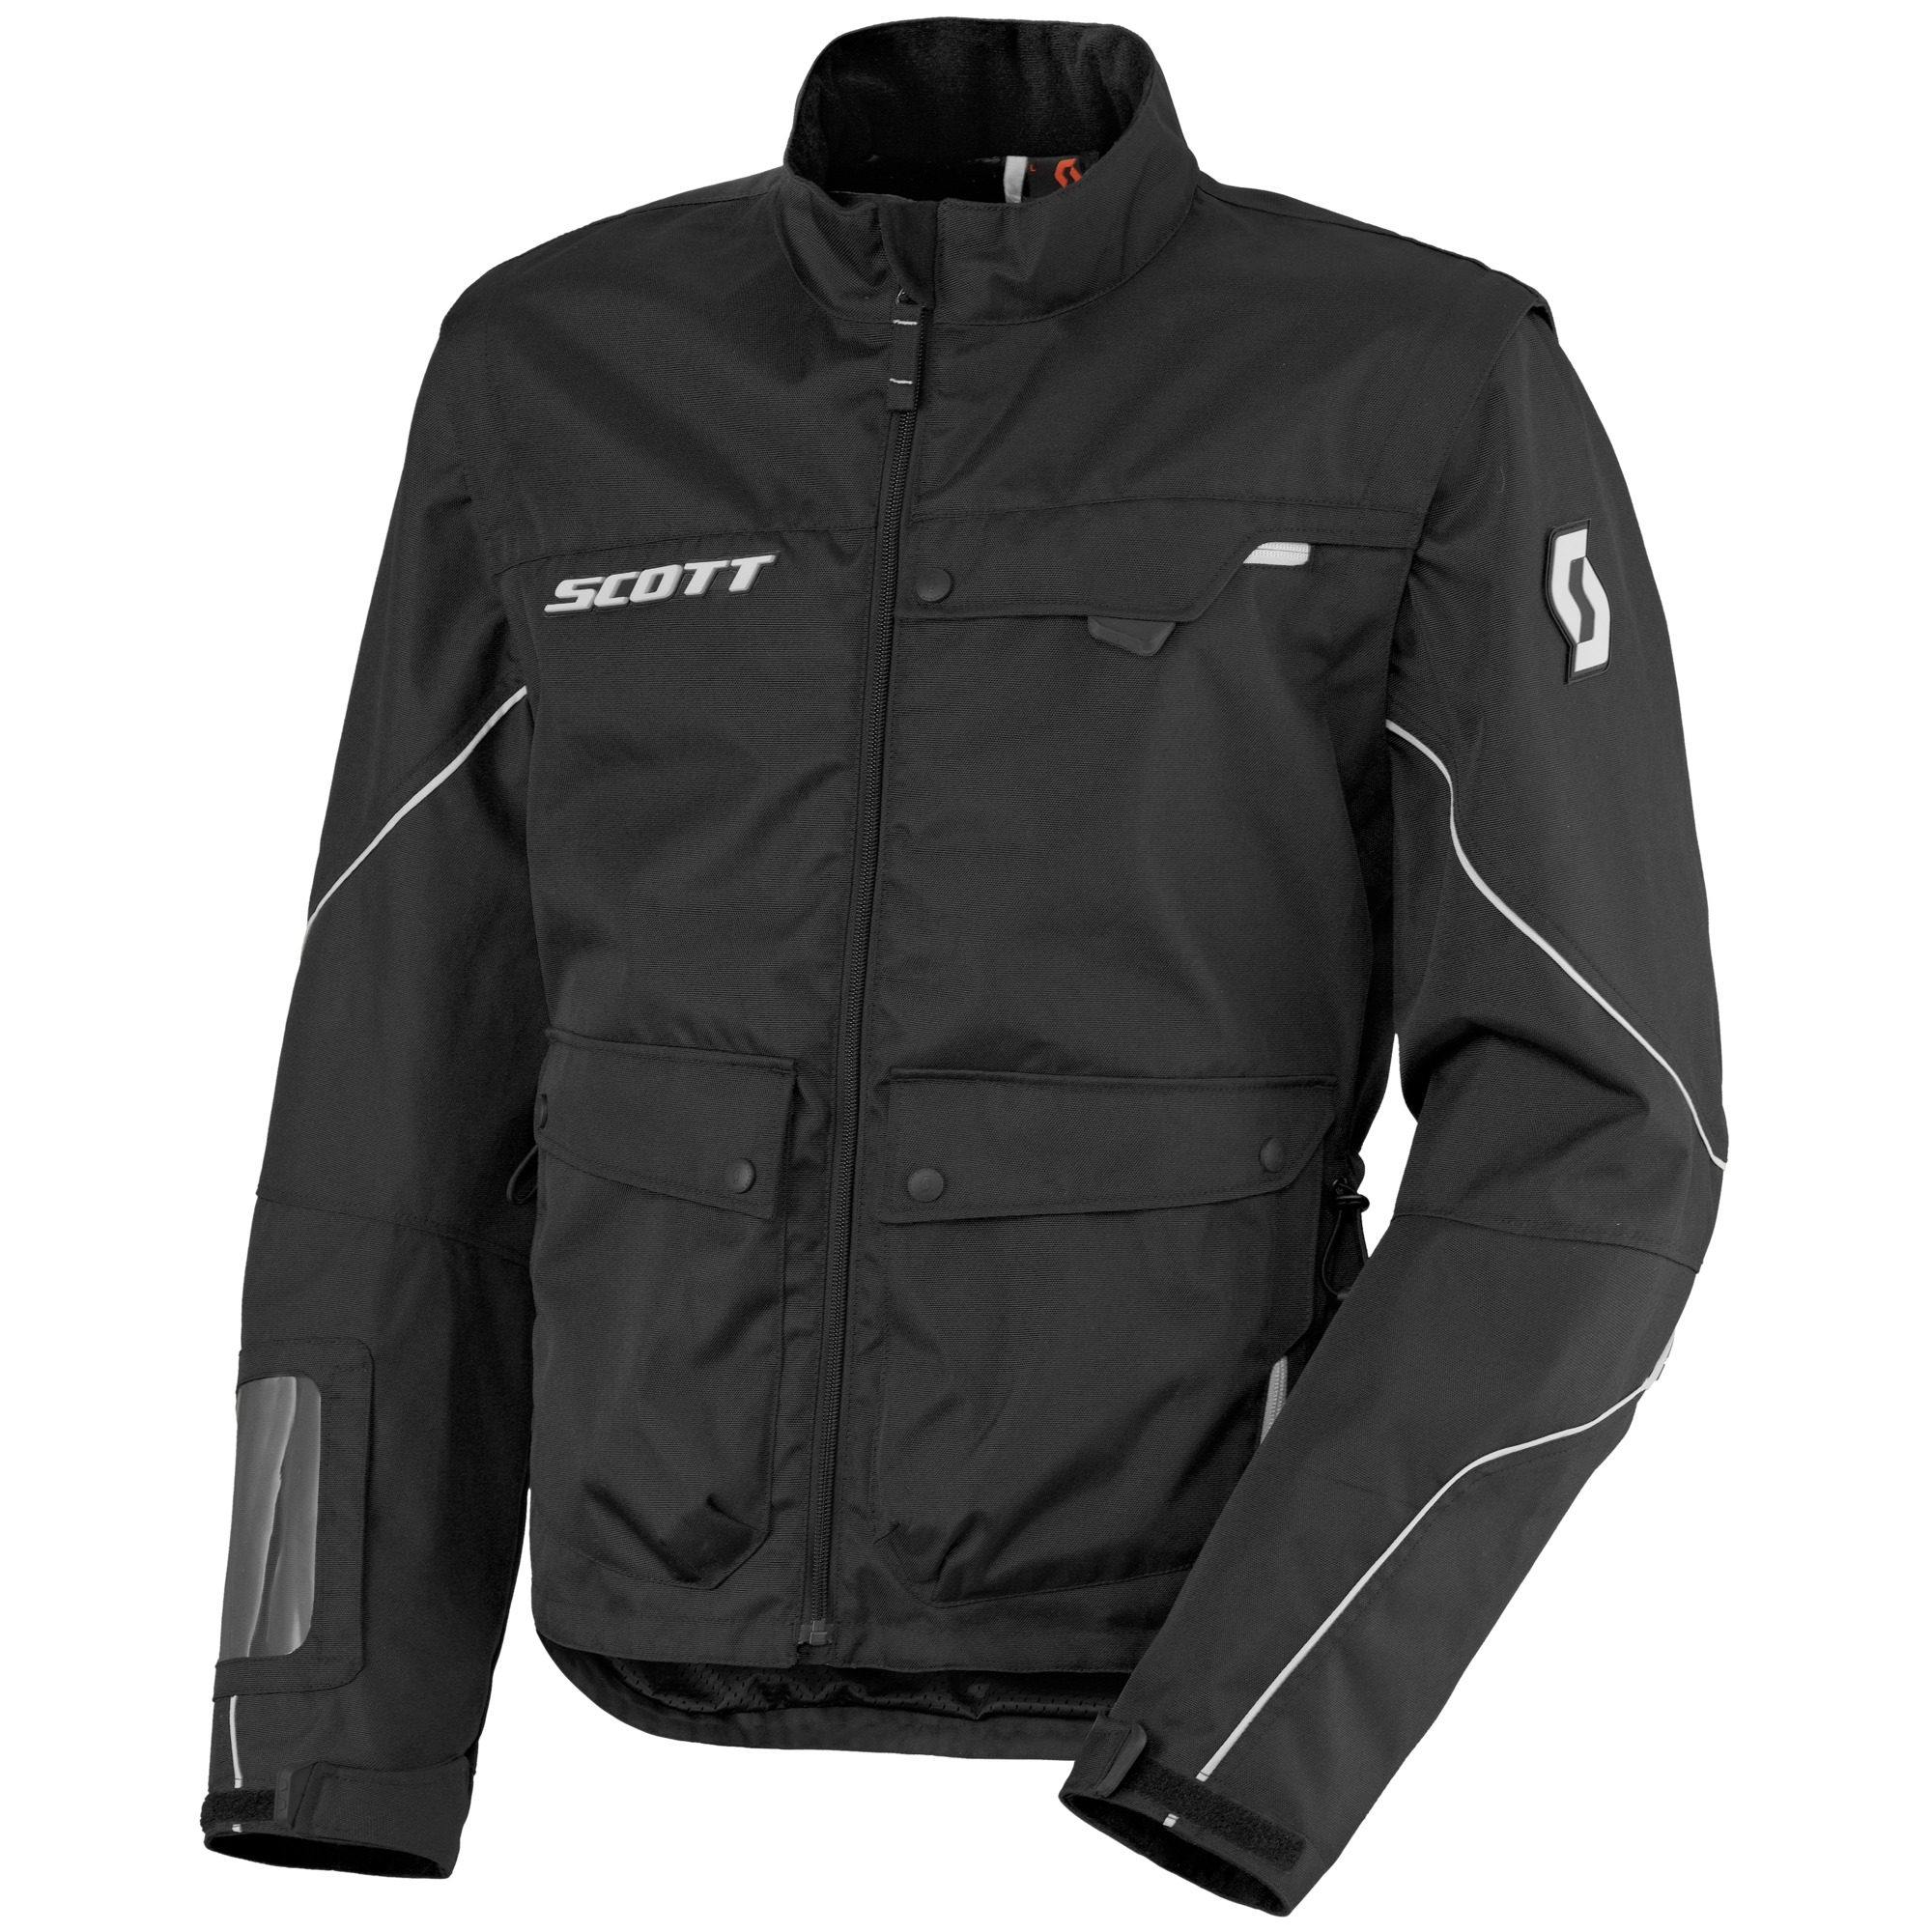 SCOTT Adventure 2 Jacket